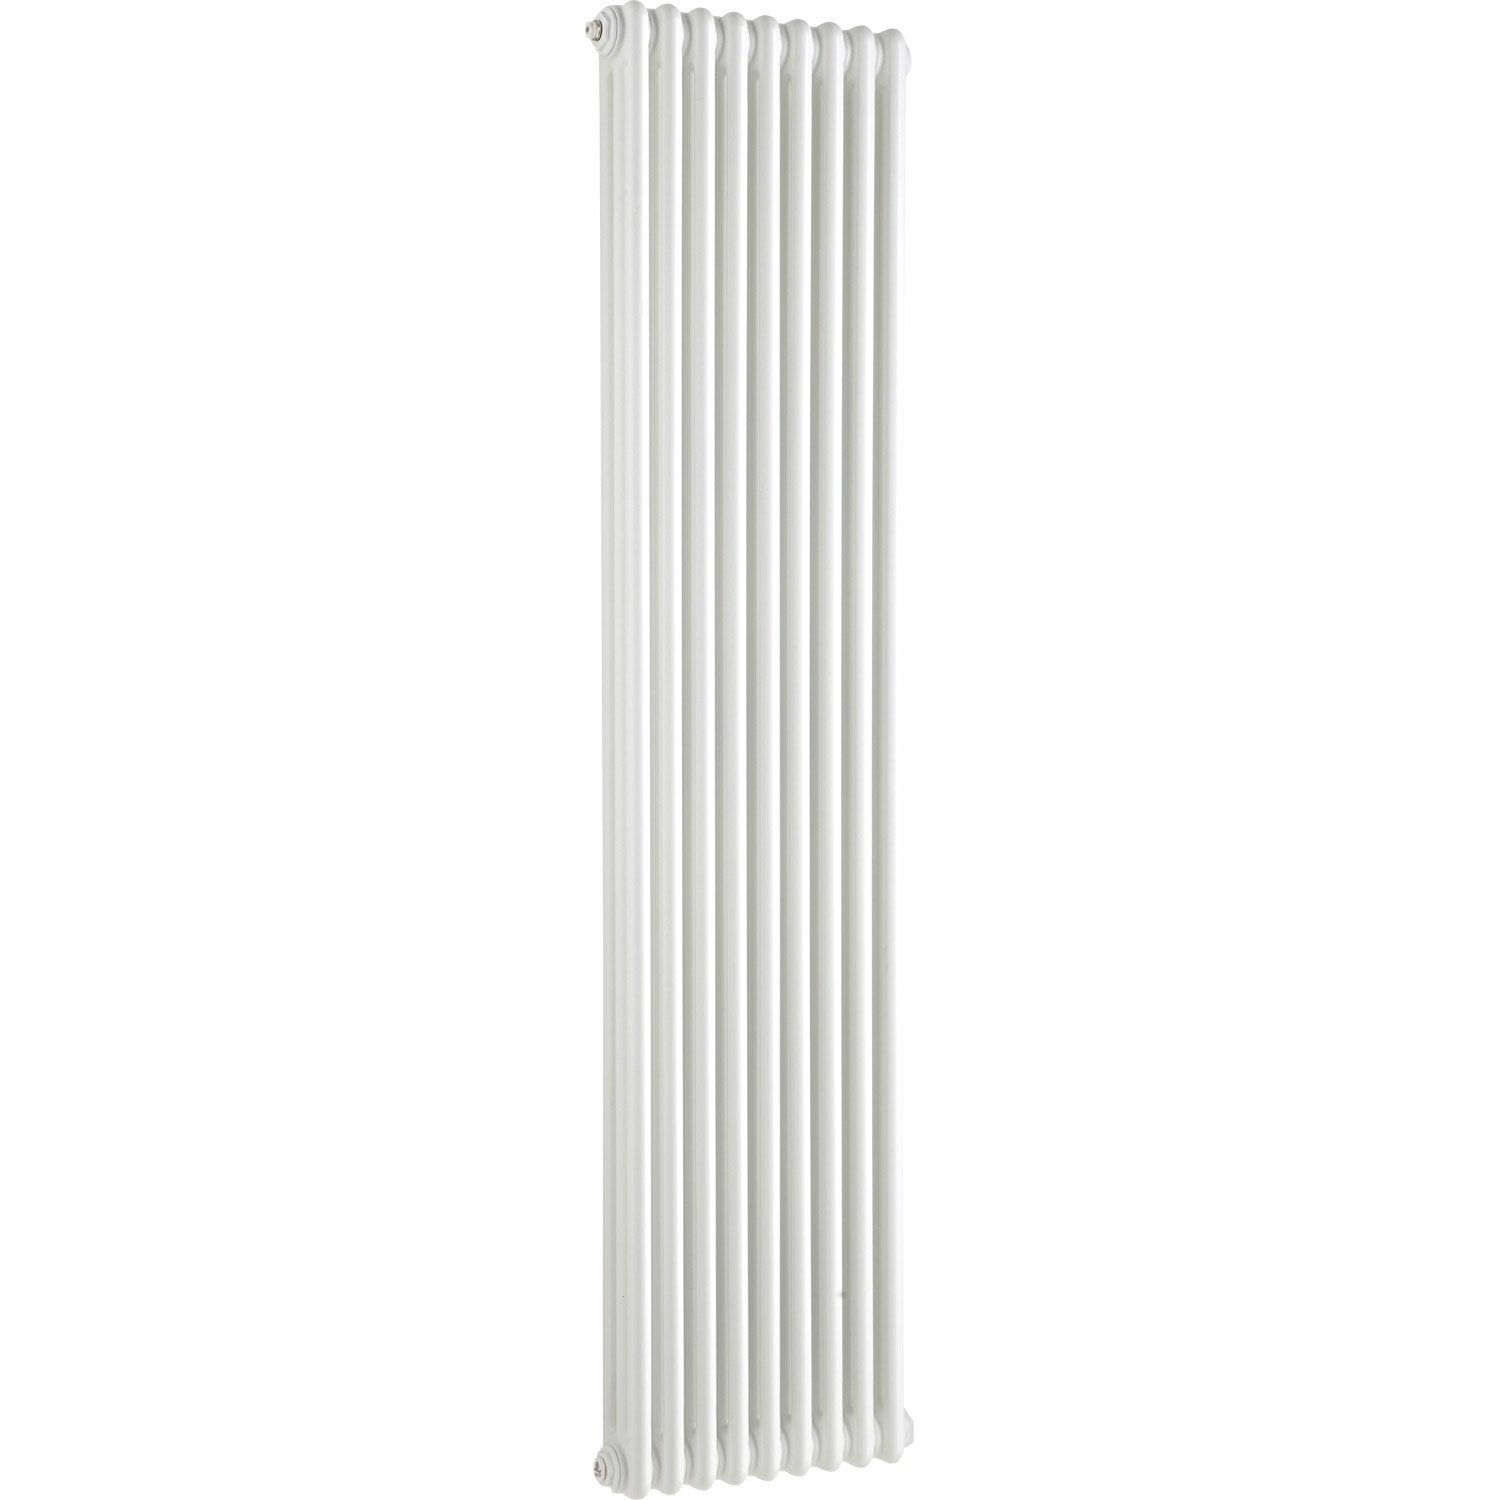 radiateur chauffage central irsap tesi cm 1520 w leroy merlin. Black Bedroom Furniture Sets. Home Design Ideas